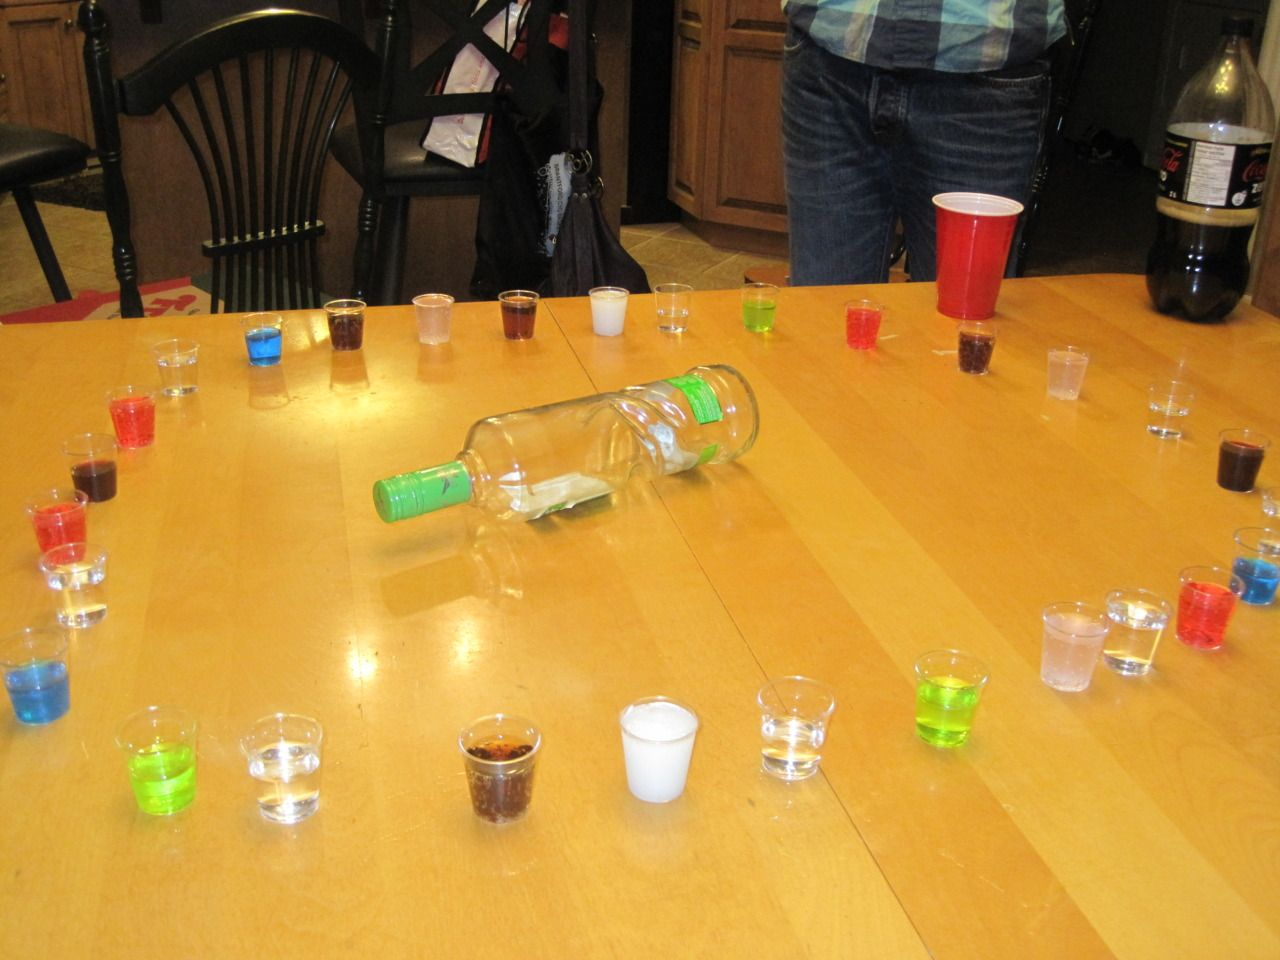 Shot Roulette. Not all the shots are alcoholic, spin the bottle and take what you get!